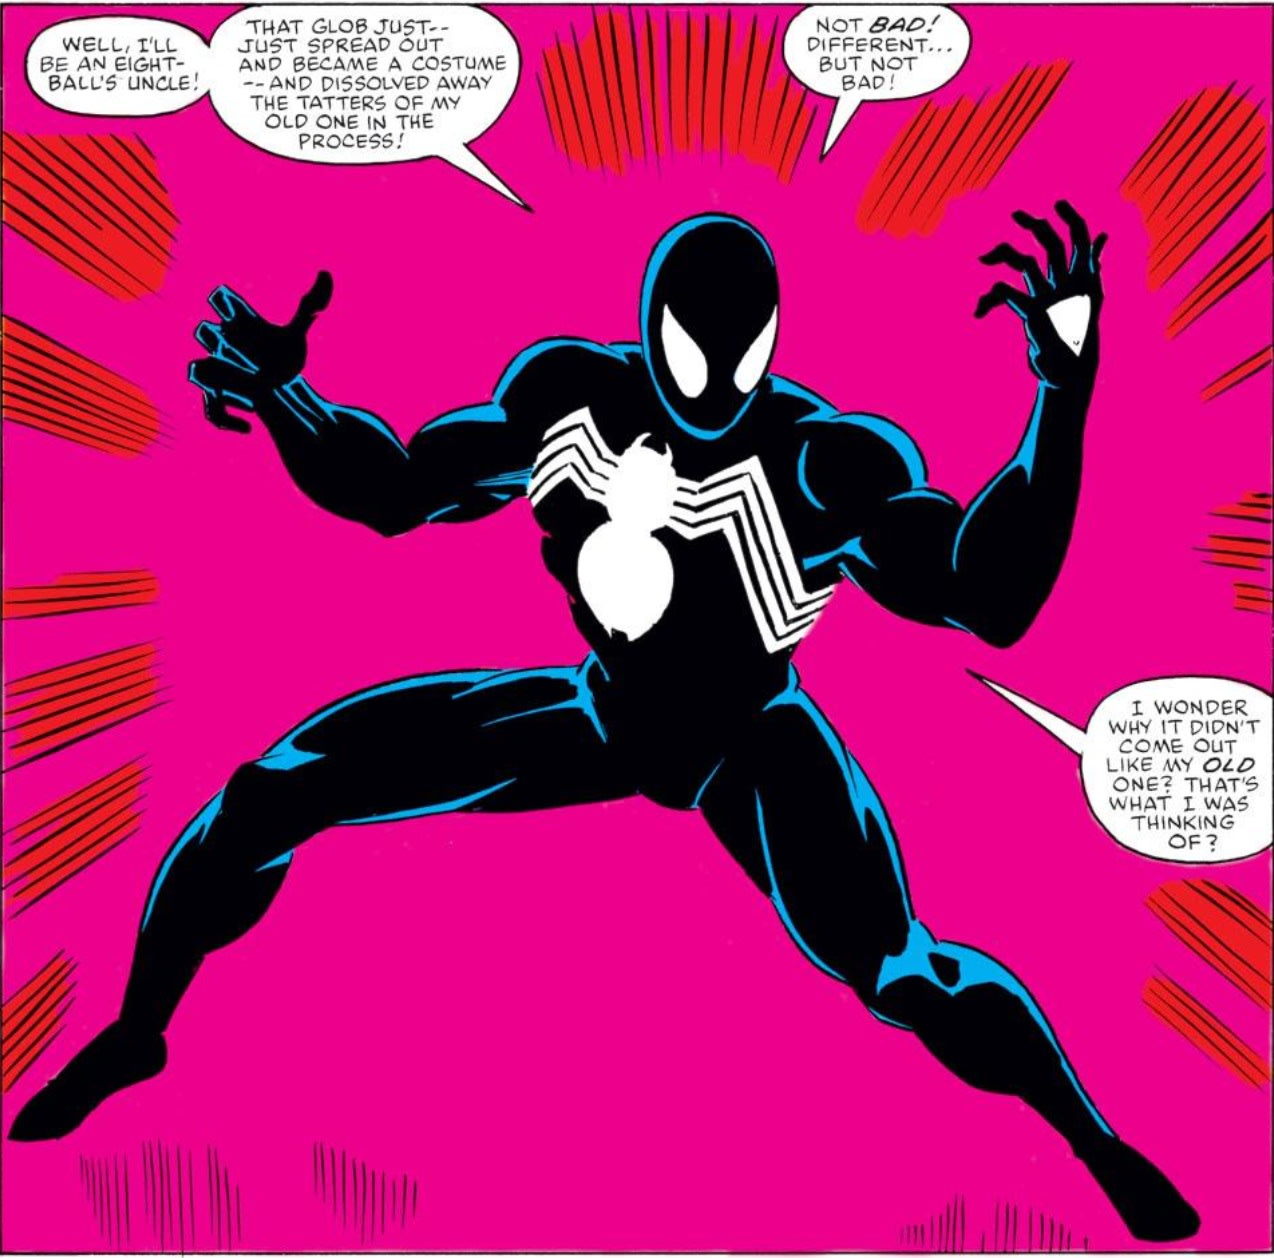 Spider-Man in the black suit/symbiote